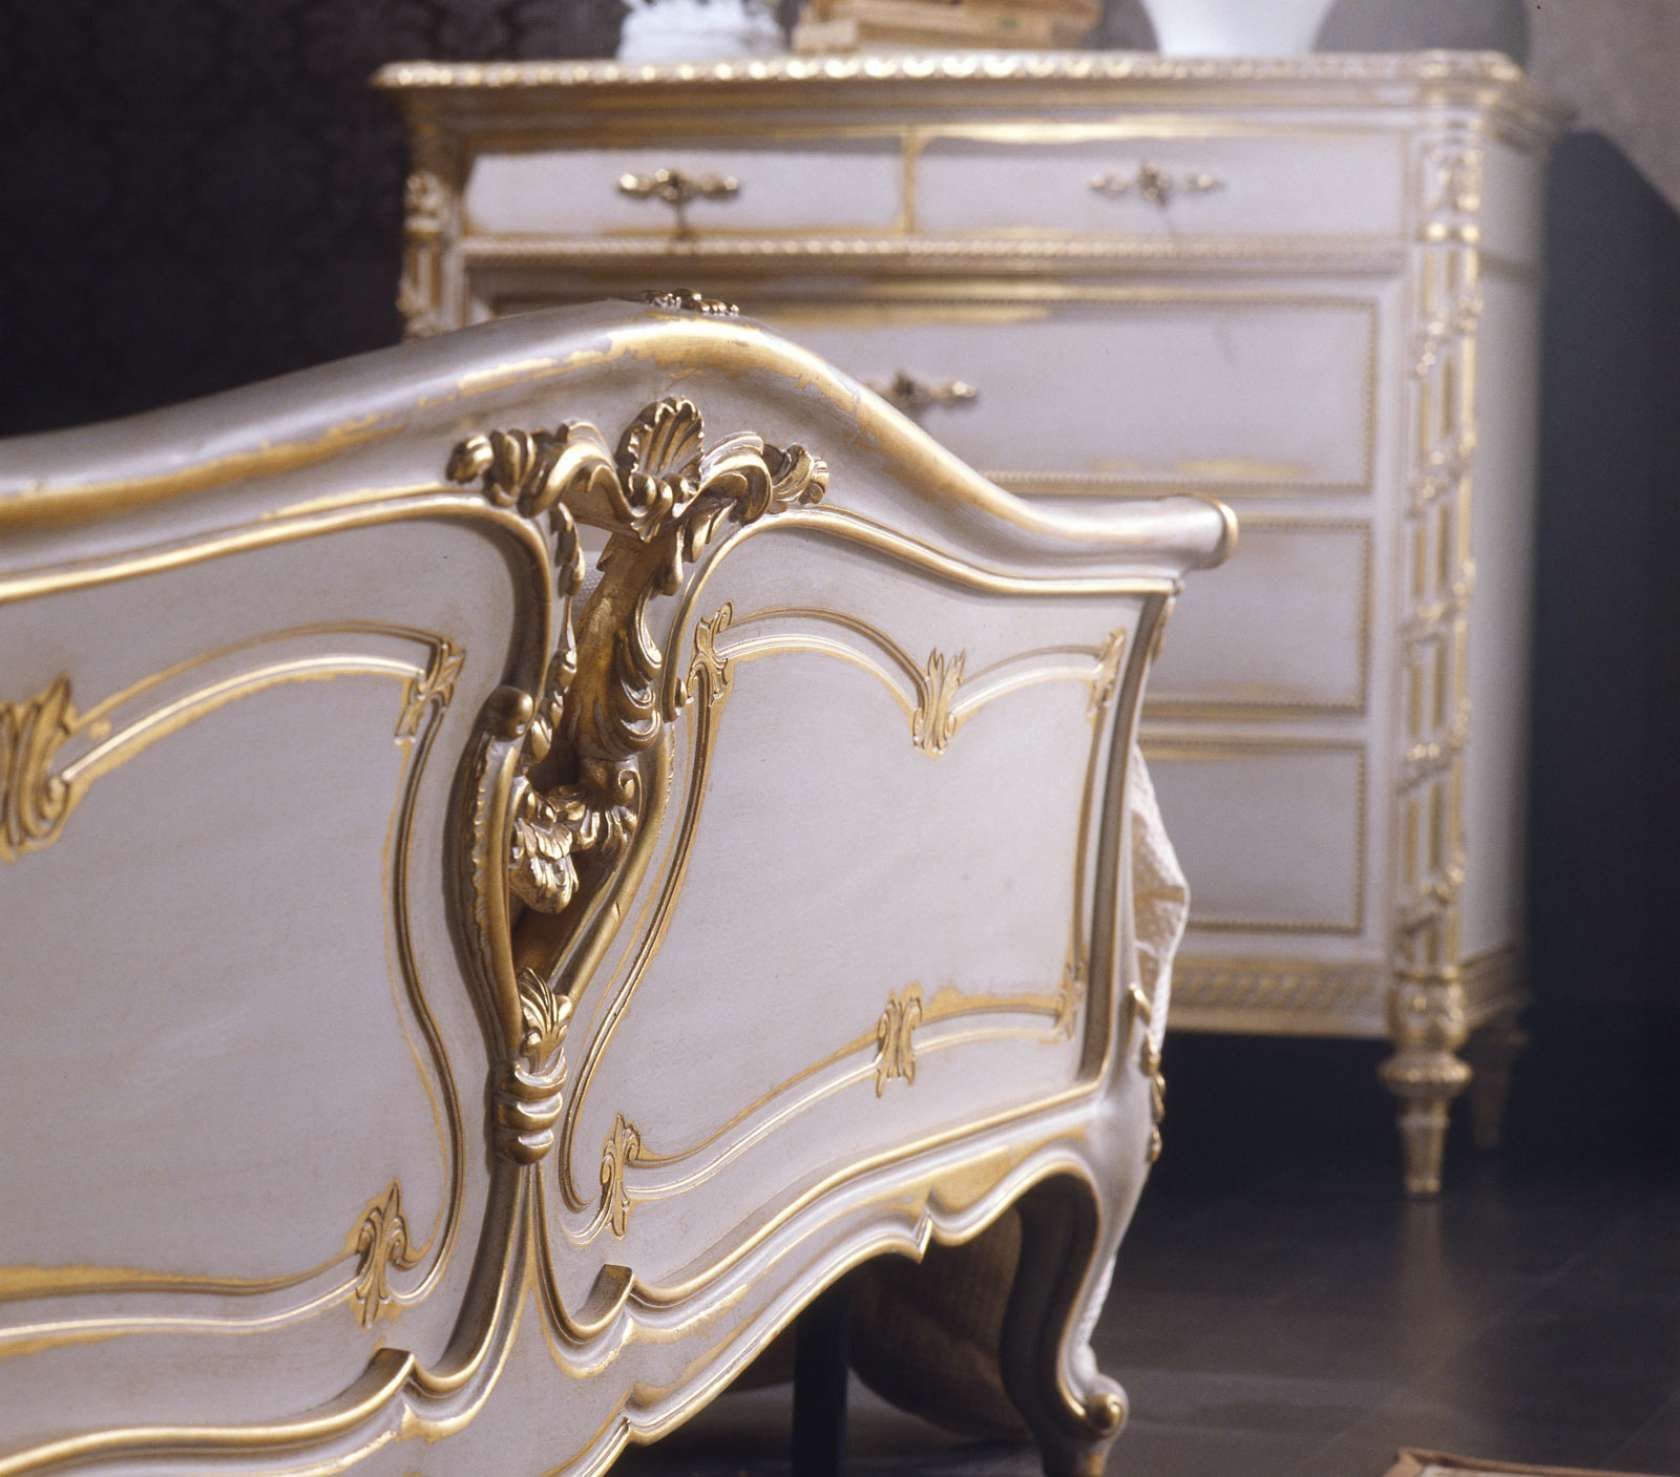 Louis xvi bedroom furniture - Louis Xvi White And Gold Classic Bedroom Vimercati Classic Furniture